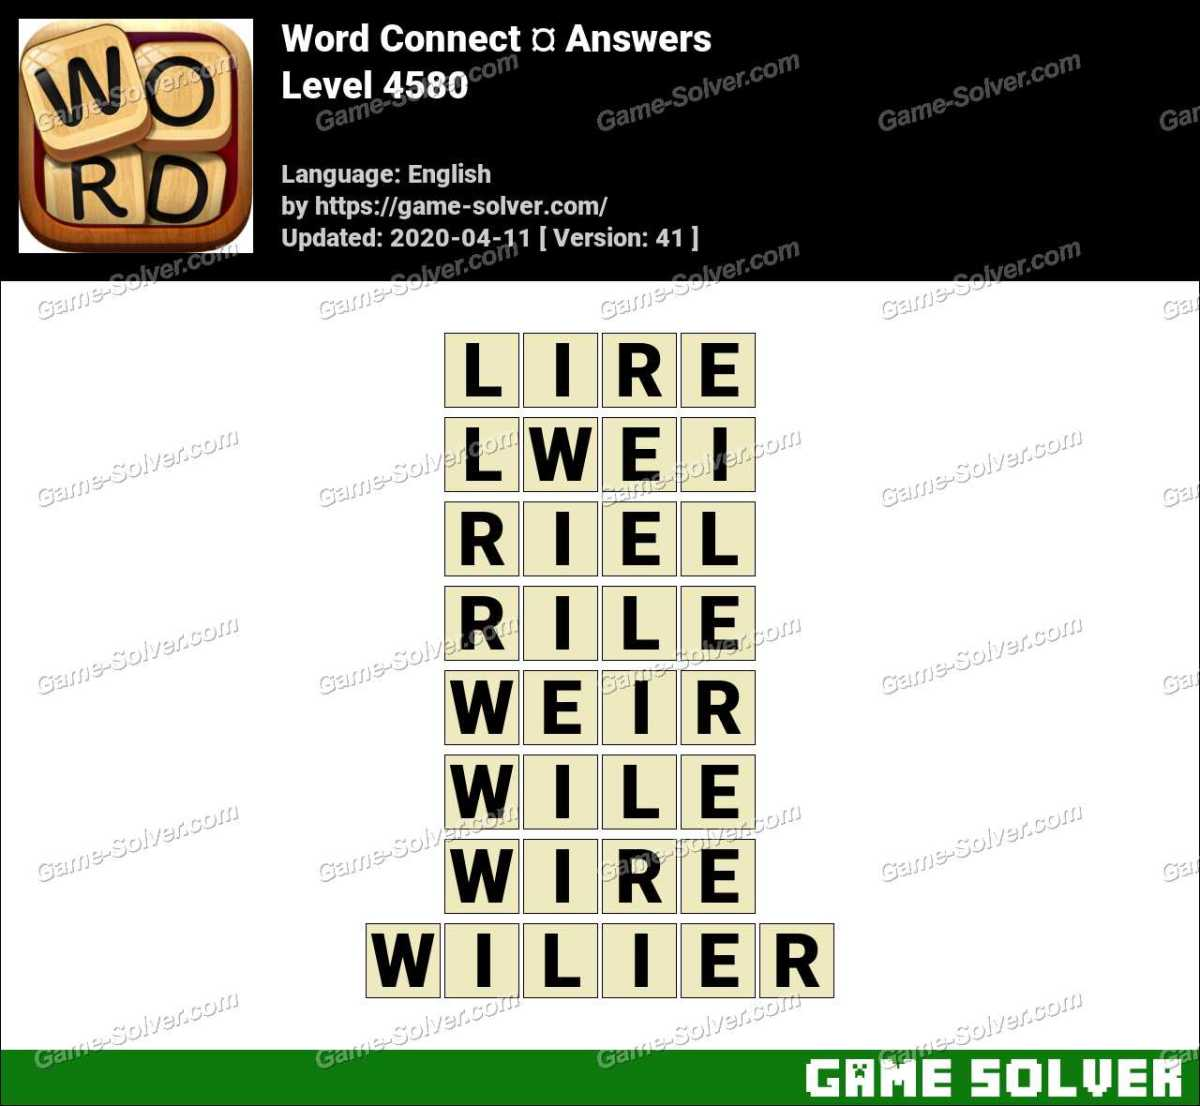 Word Connect Level 4580 Answers